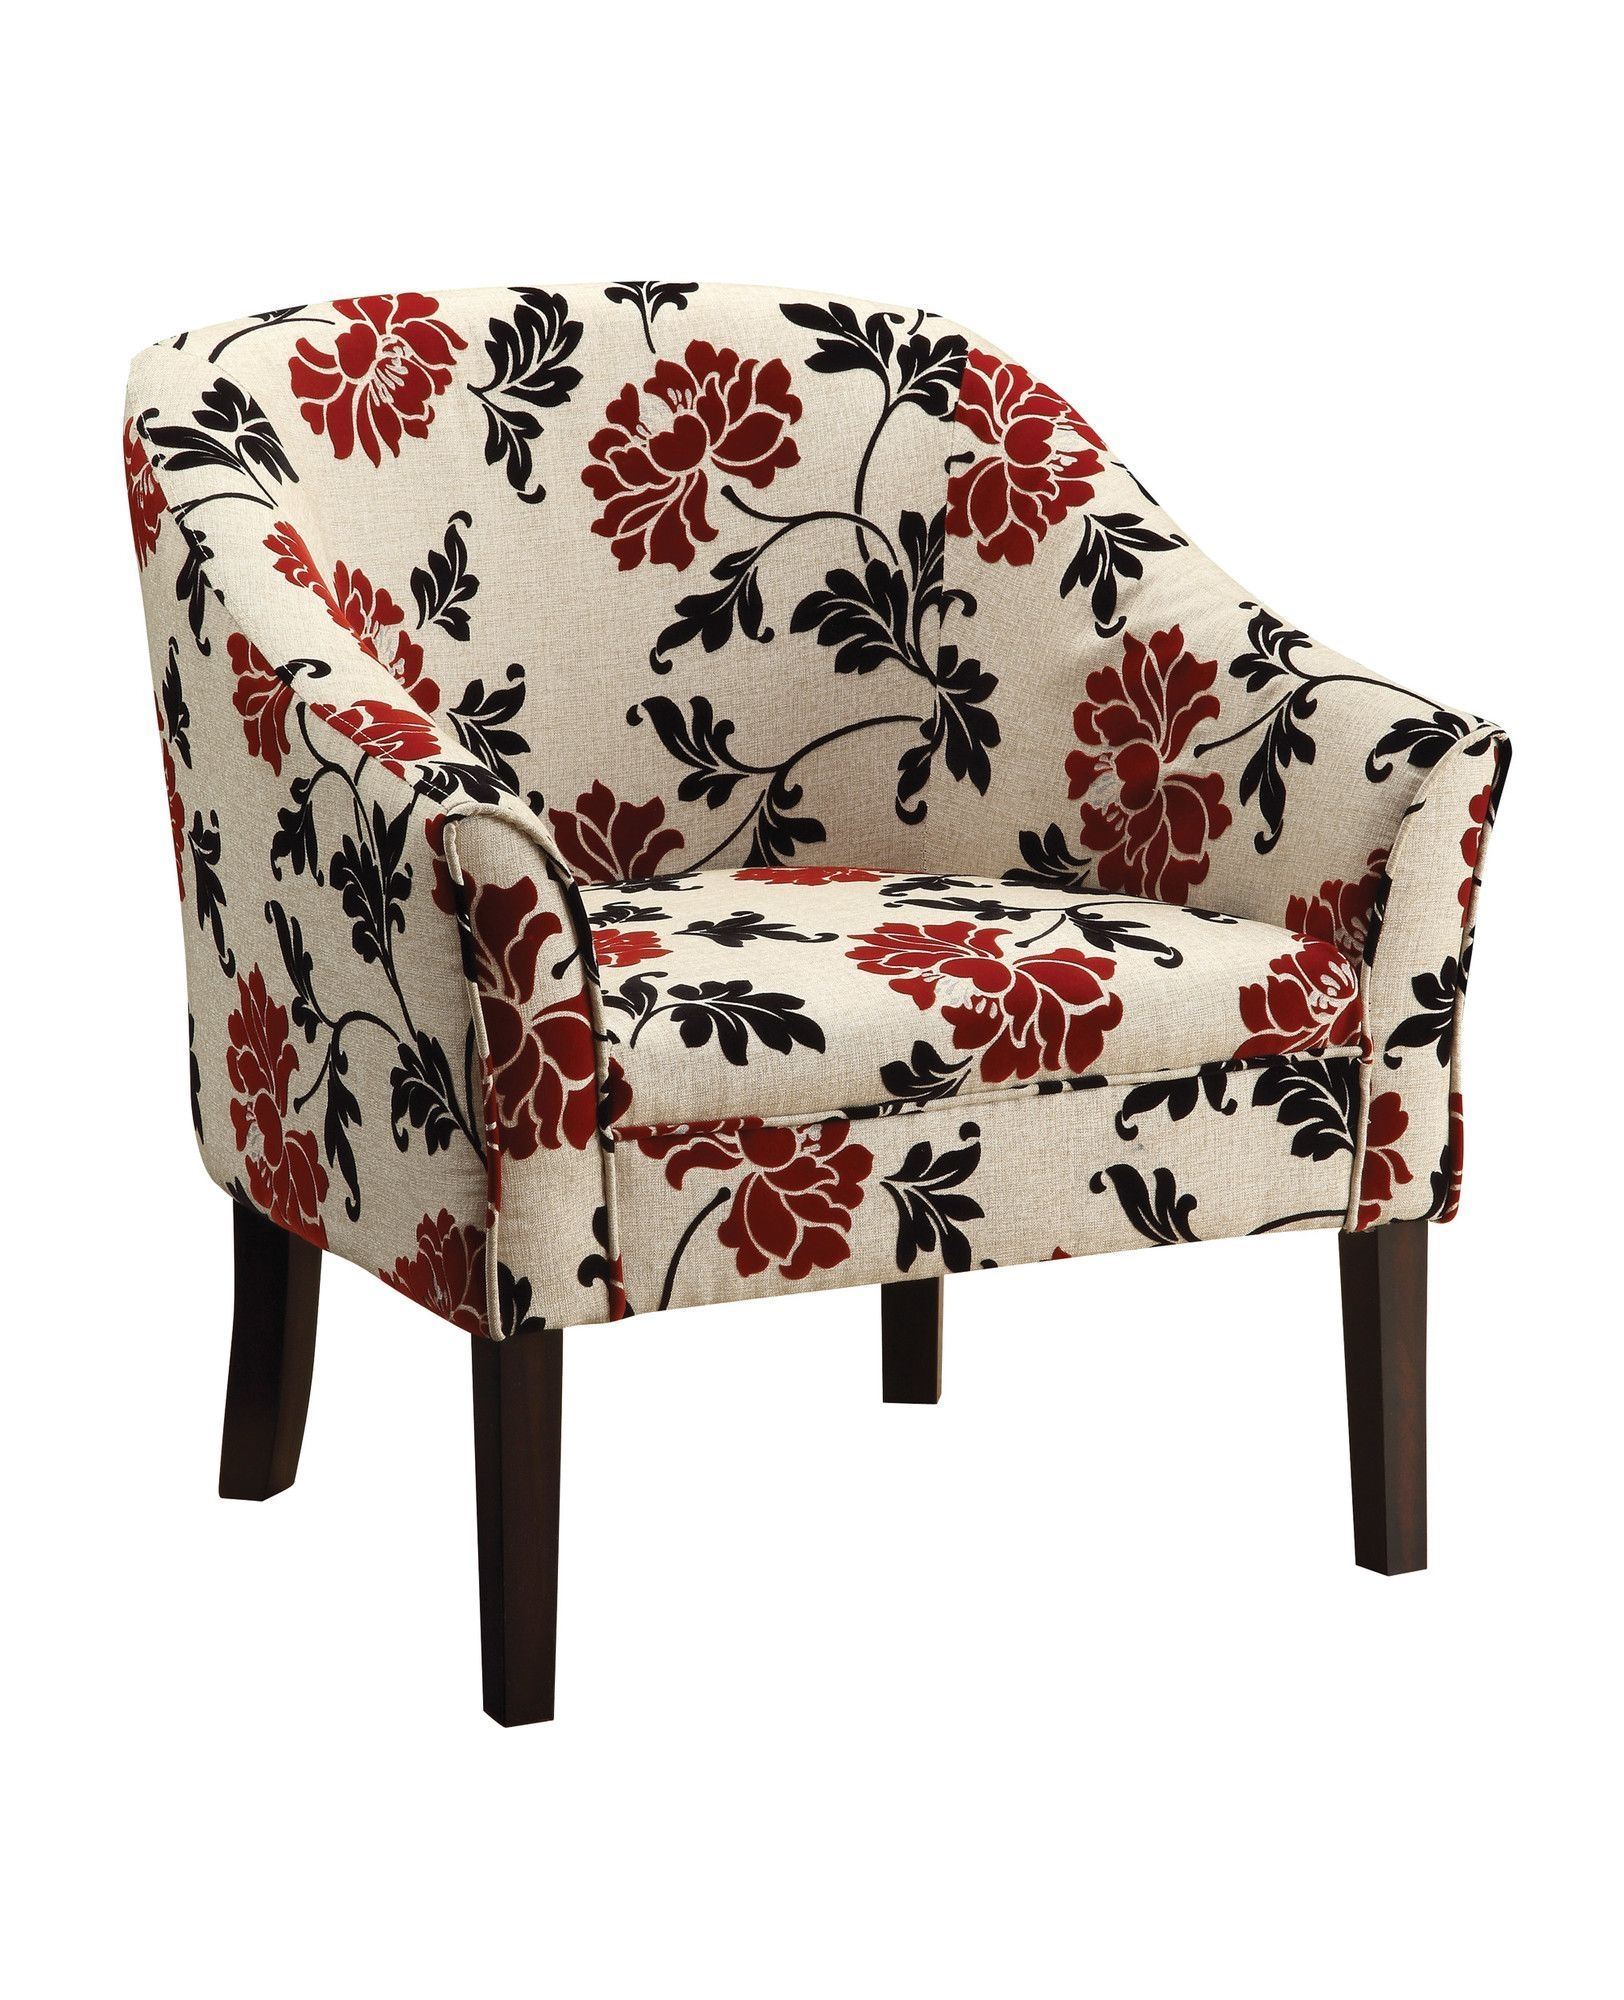 Genial Floral Upholstered Accent Chair